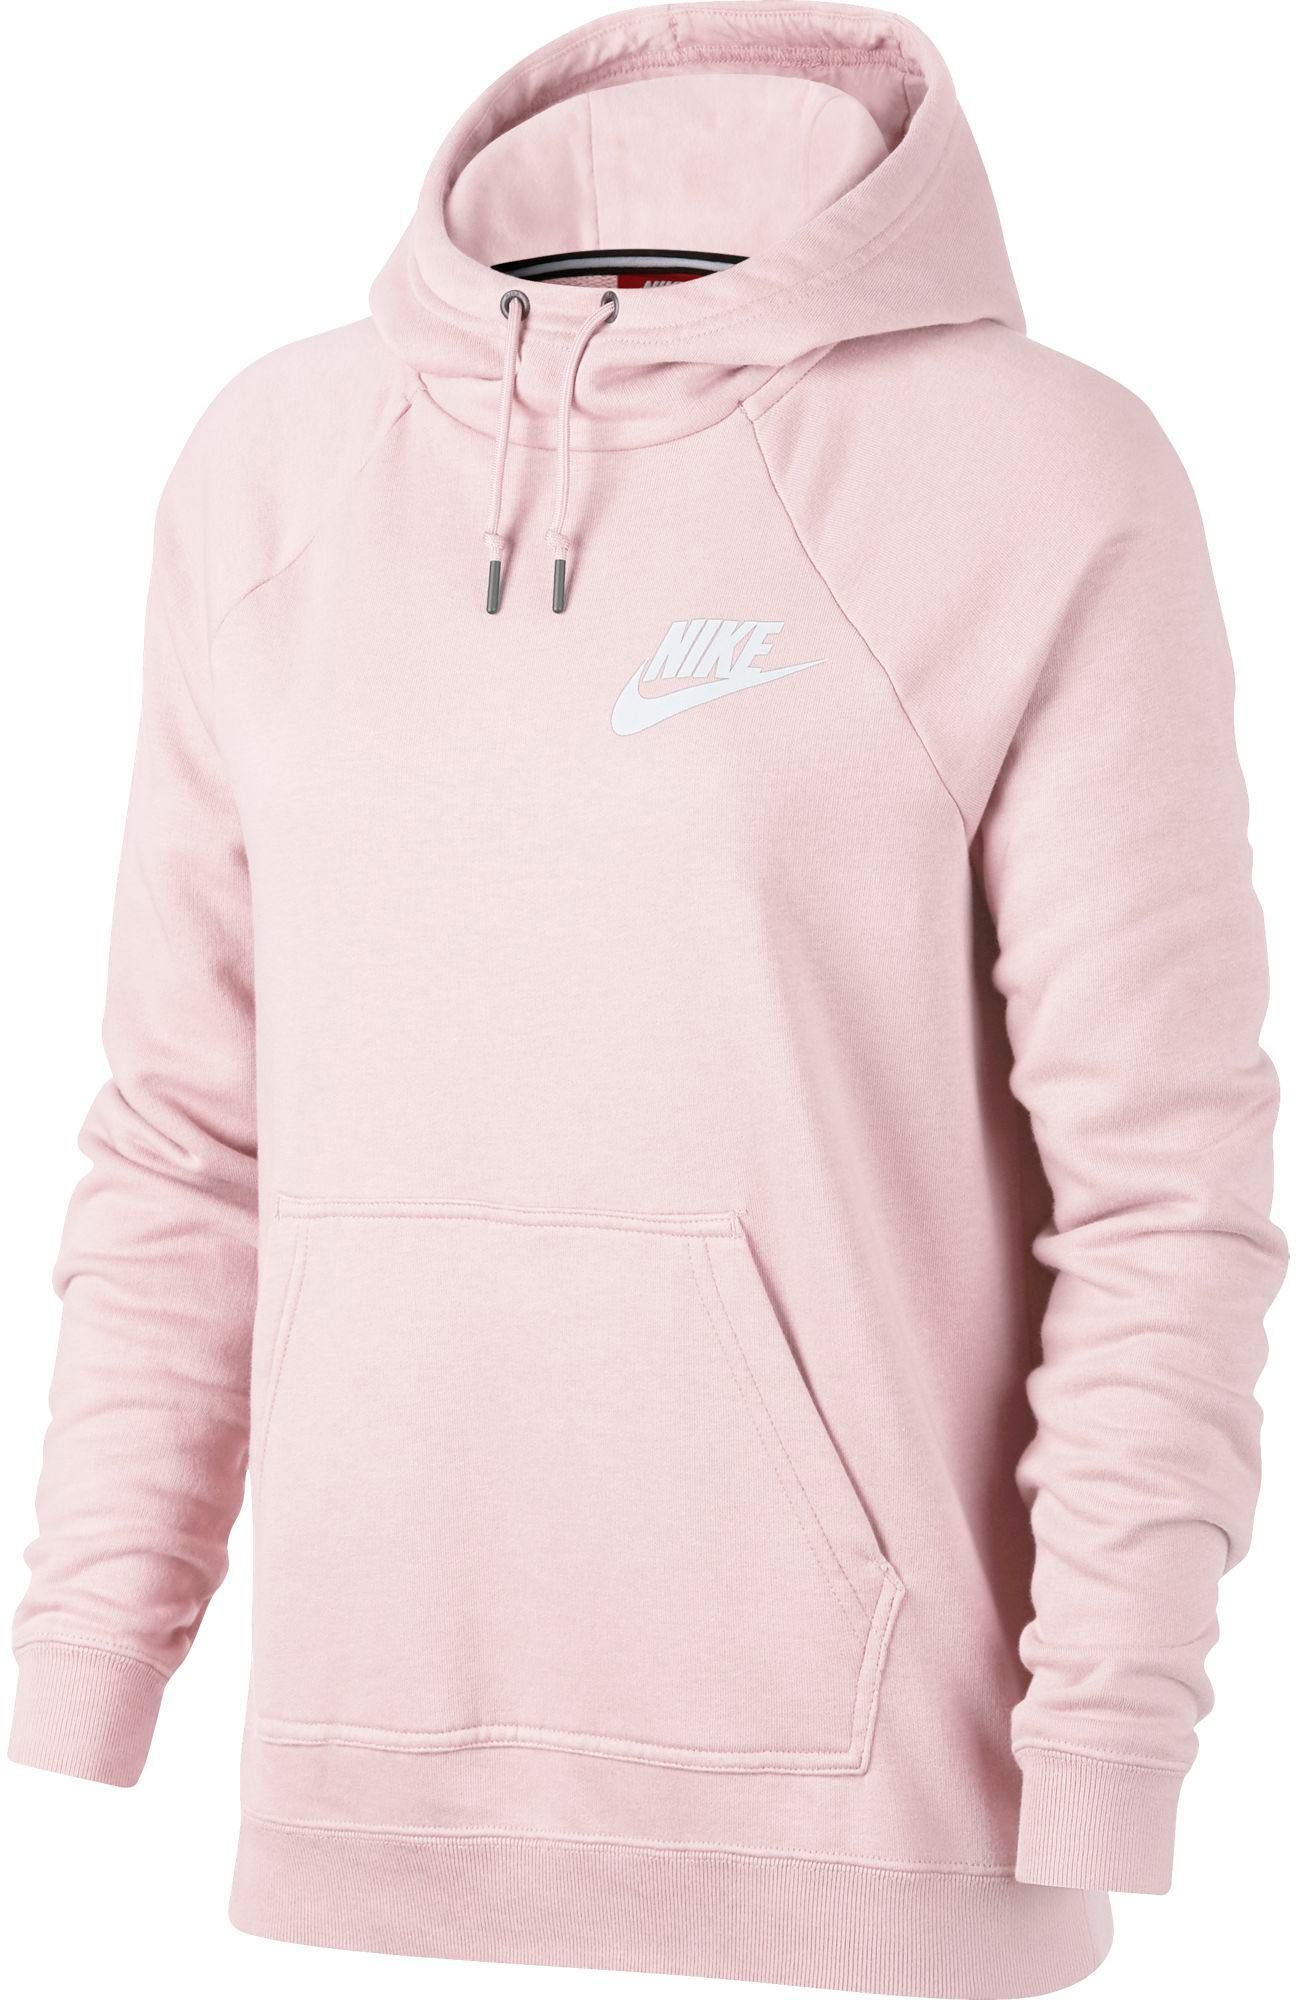 Nike Women's Sportswear Rally Hoodie, Size: Medium, Pearl